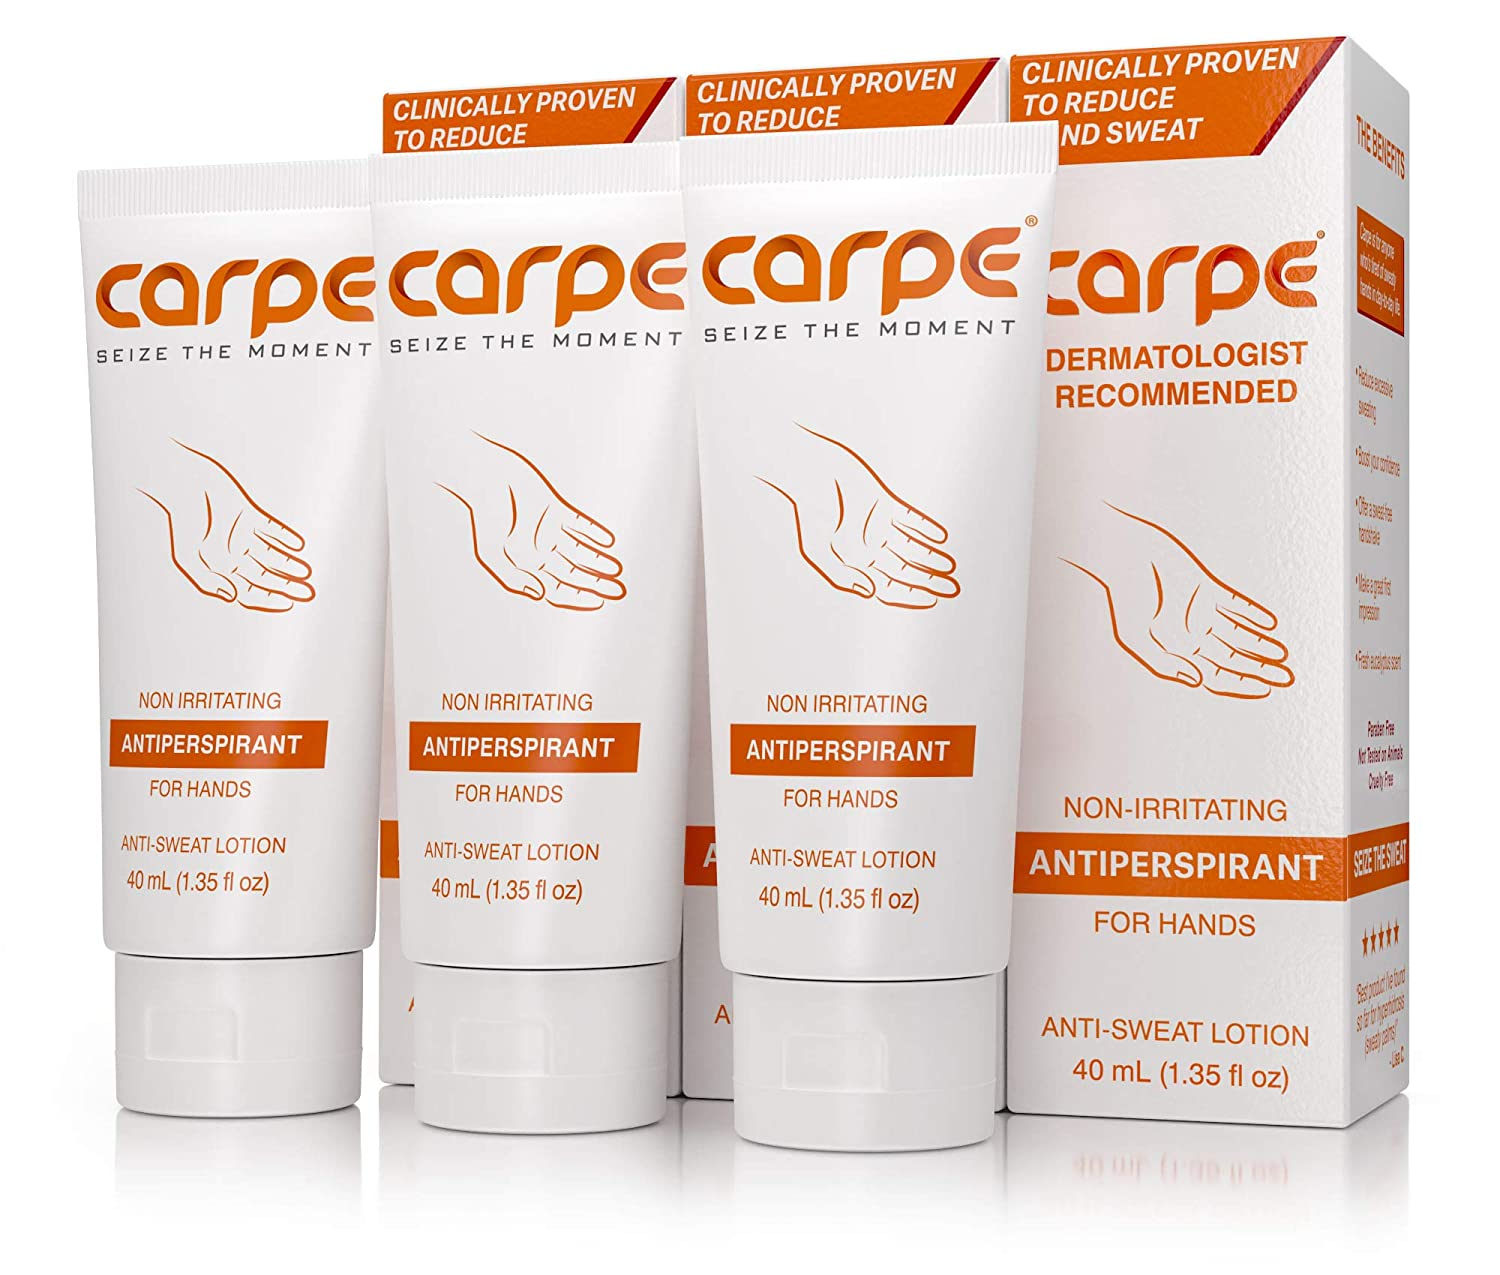 Carpe Antiperspirant Hand Lotion Package Deal (3 Hand Tubes - Save 22%), Stop Sweaty Hands, Dermatologist-Recommended